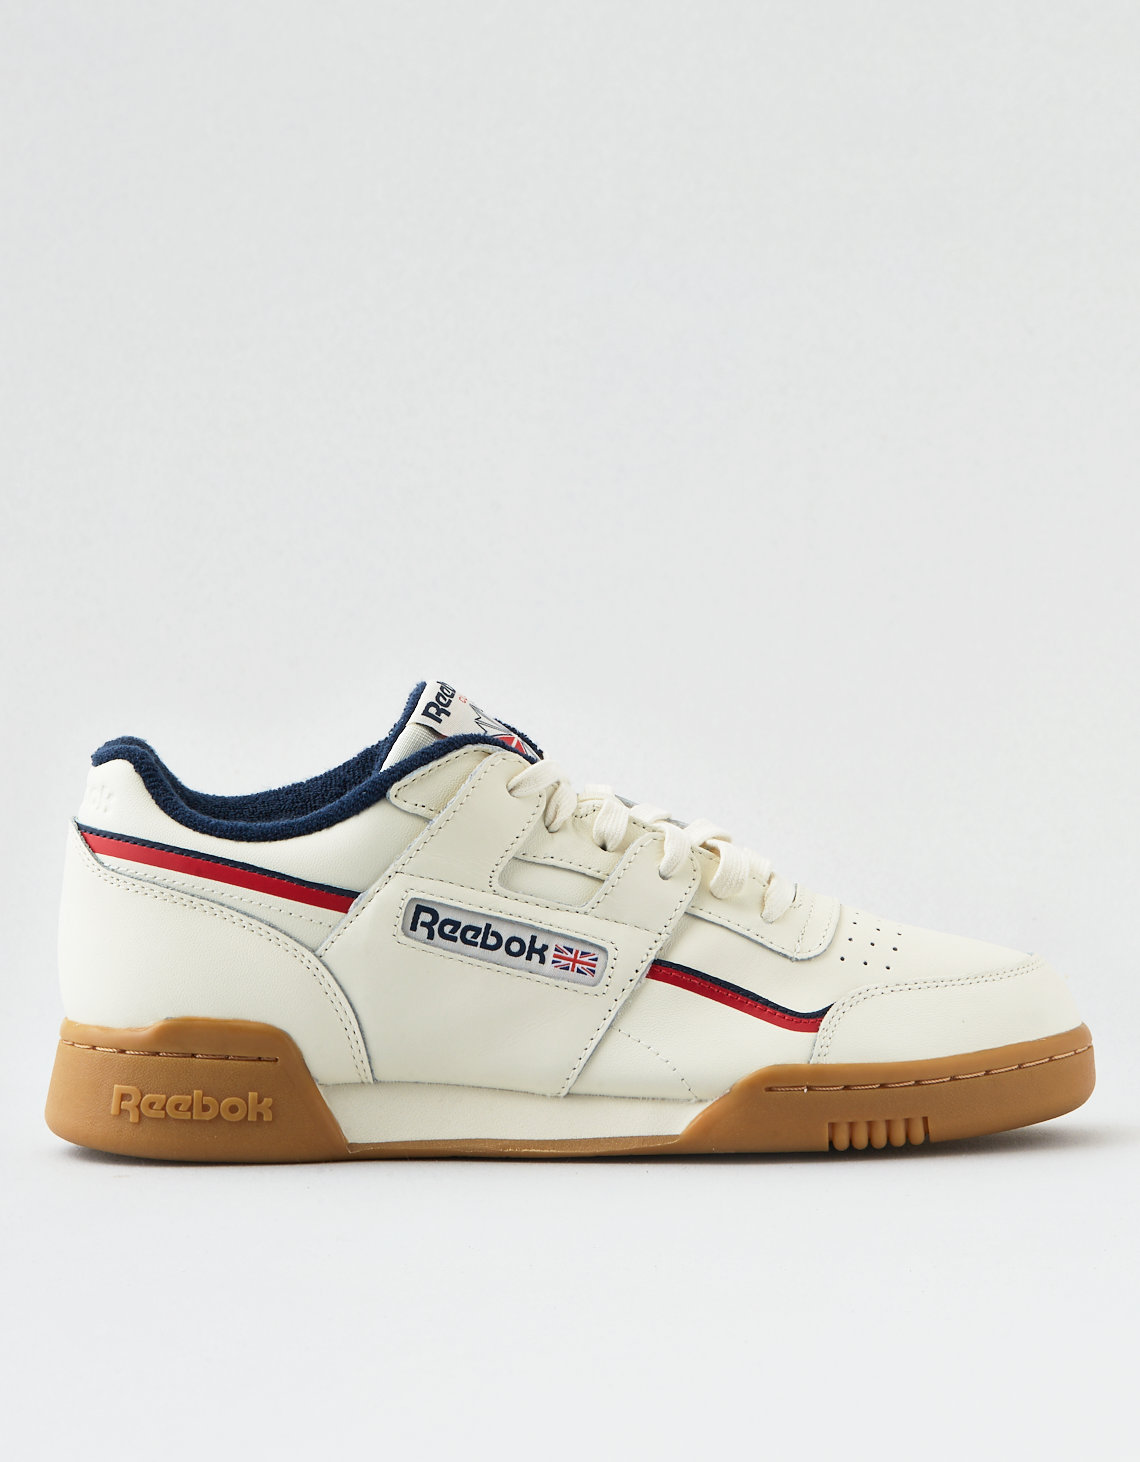 dd435d8dd71 Reebok Workout Plus MU Sneaker. Placeholder image. Product Image